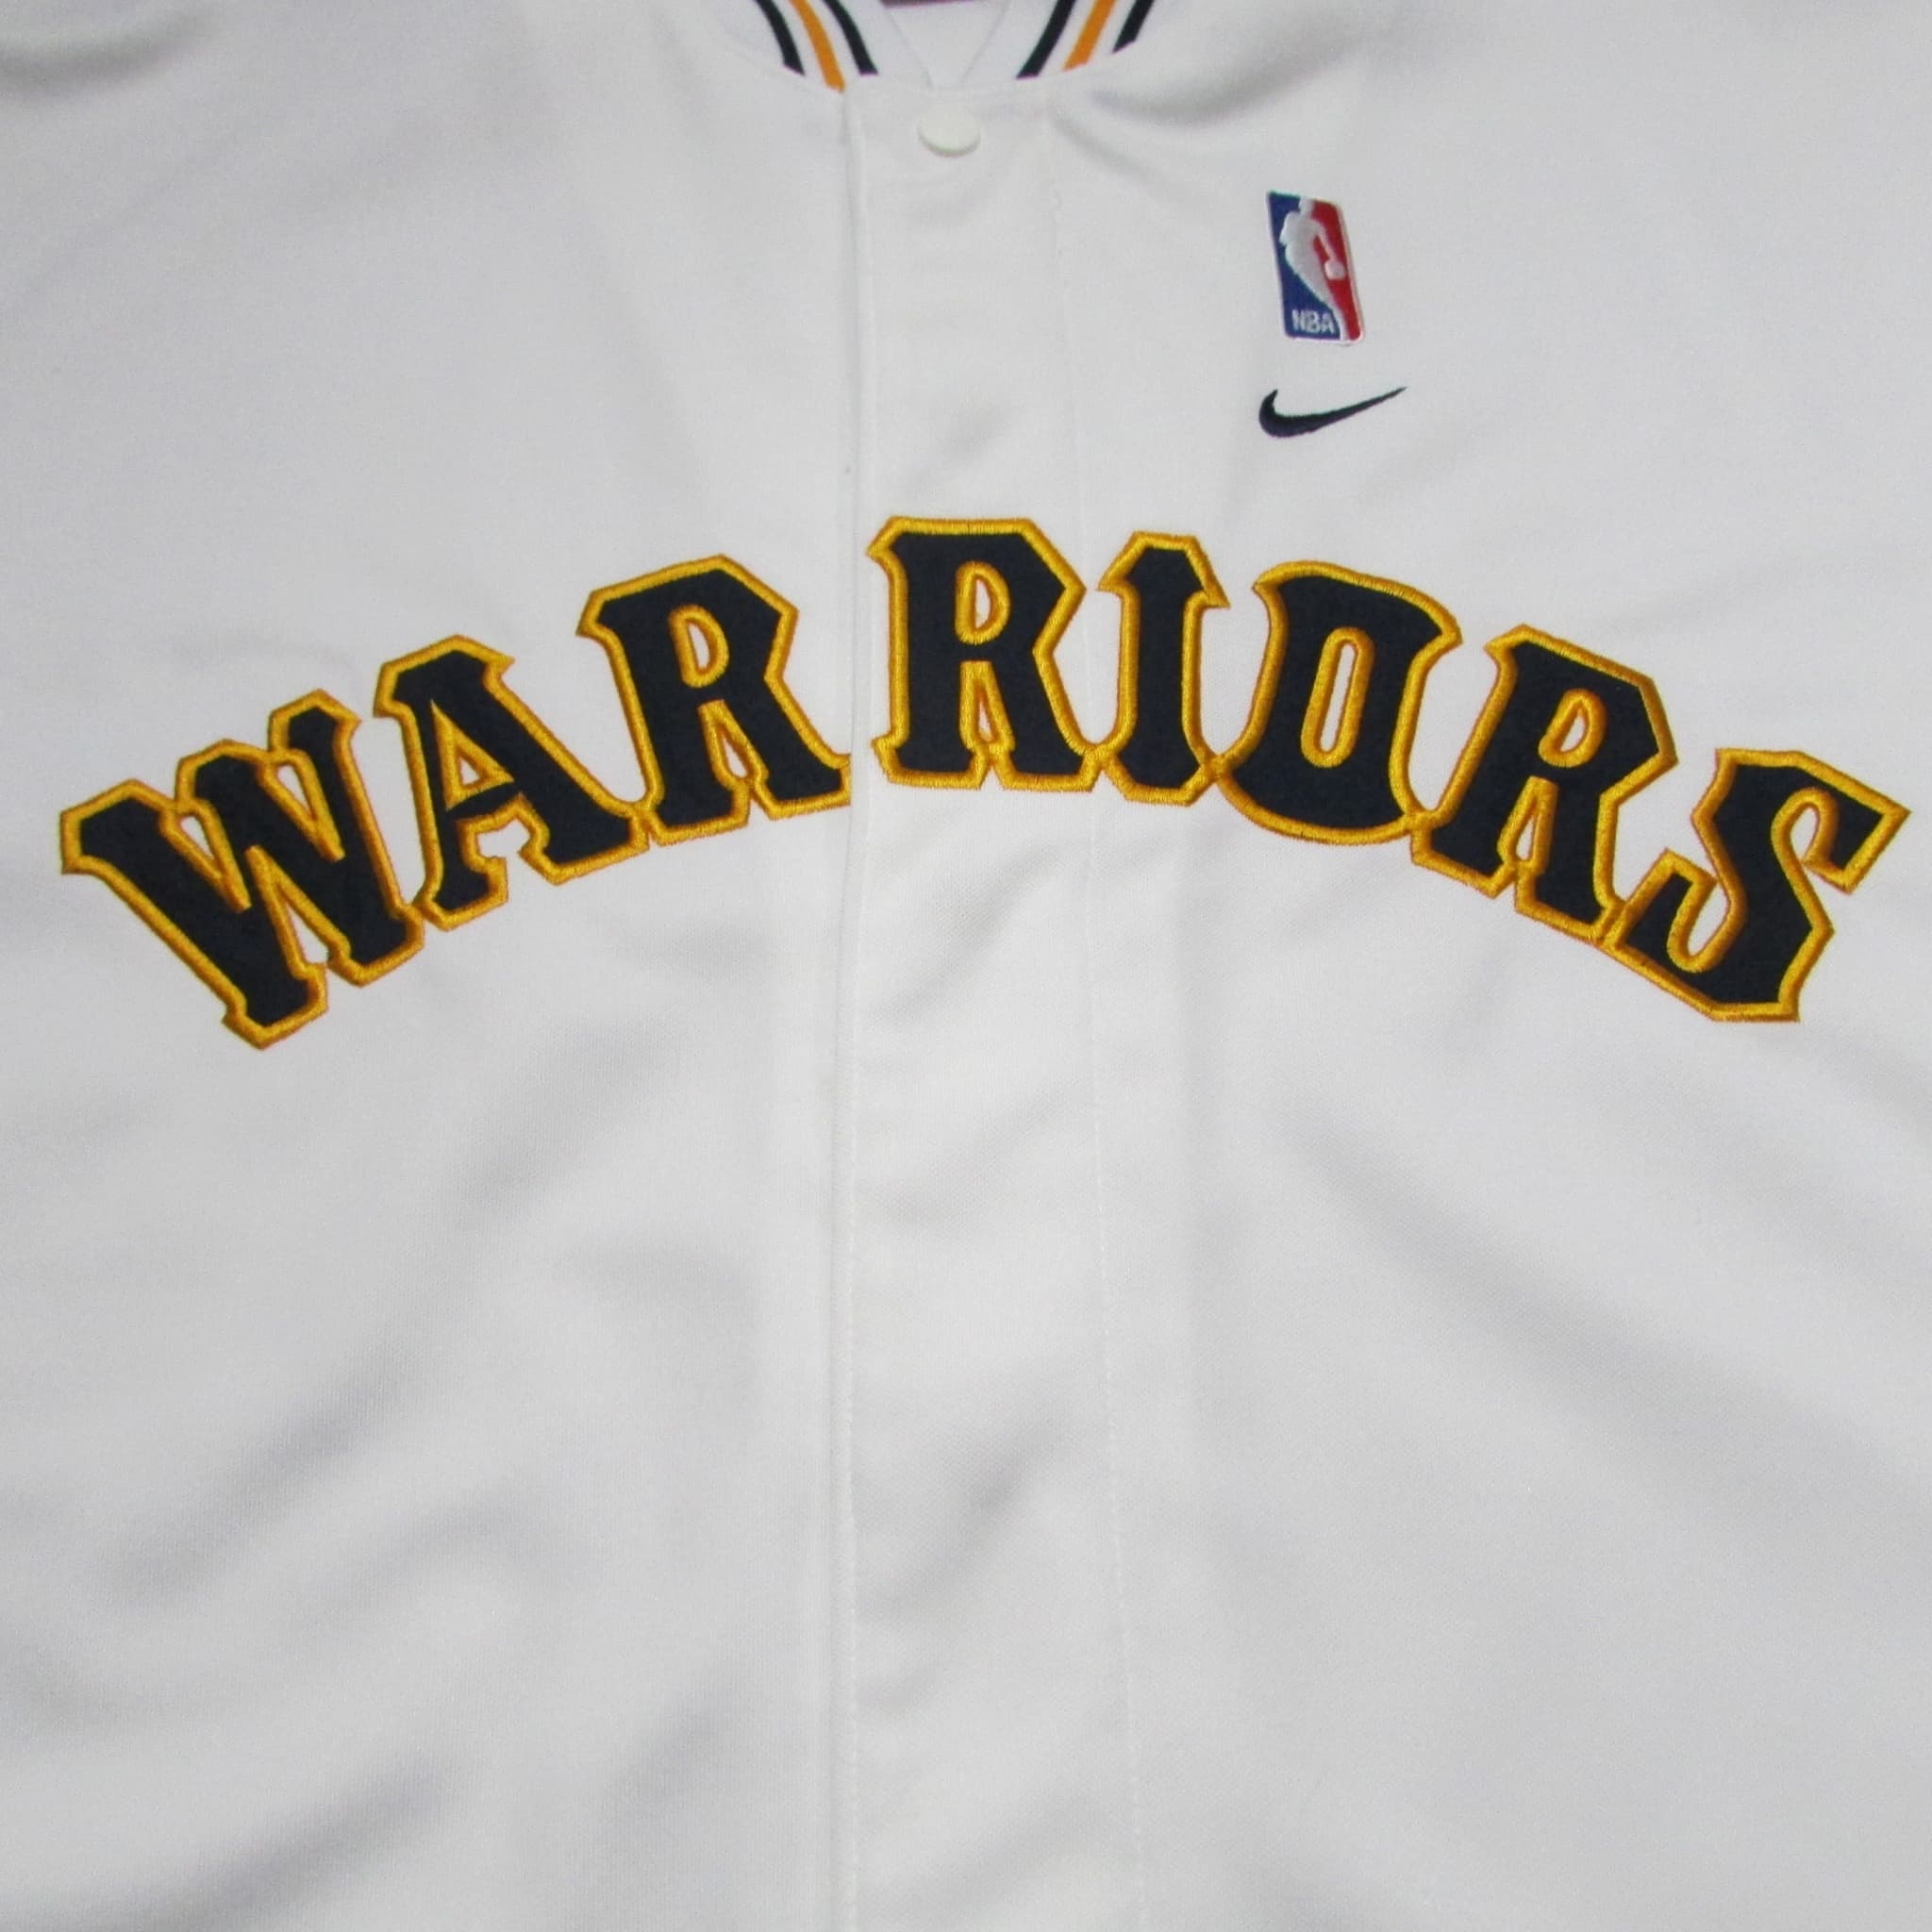 Golden State Warriors Vintage Warm-up Jersey Shirt NIKE Sz M